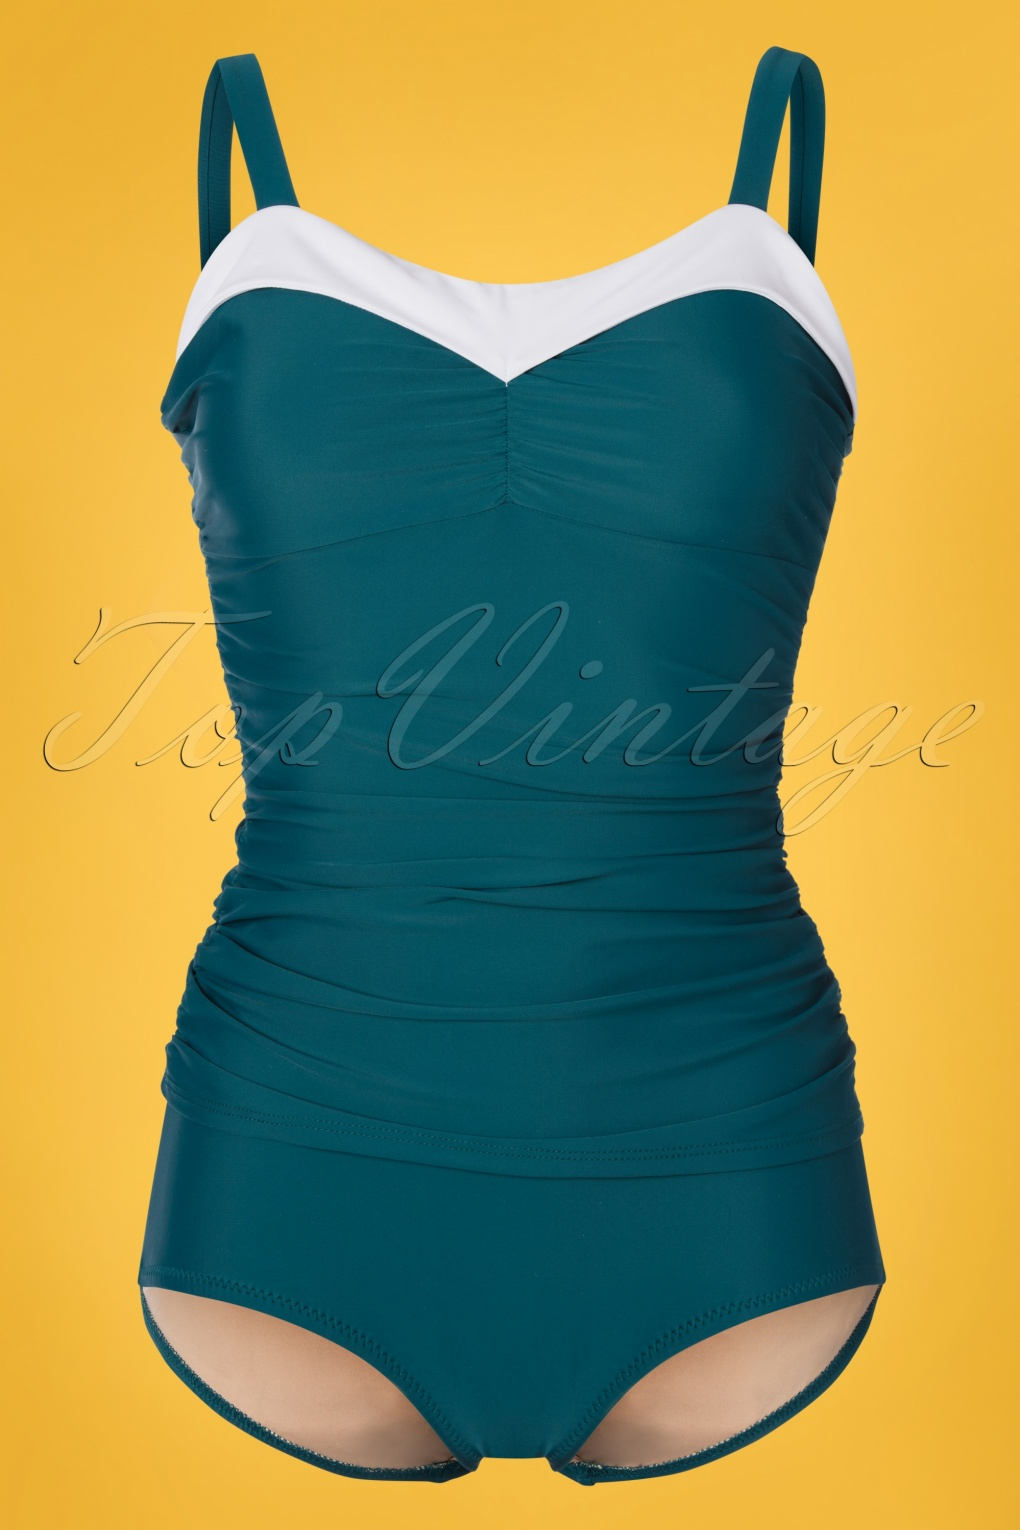 7cfef5c3d7 1950s Bathing Suits, Swimsuits History 50s Regina One Piece Swimsuit in  Teal Green  99.40